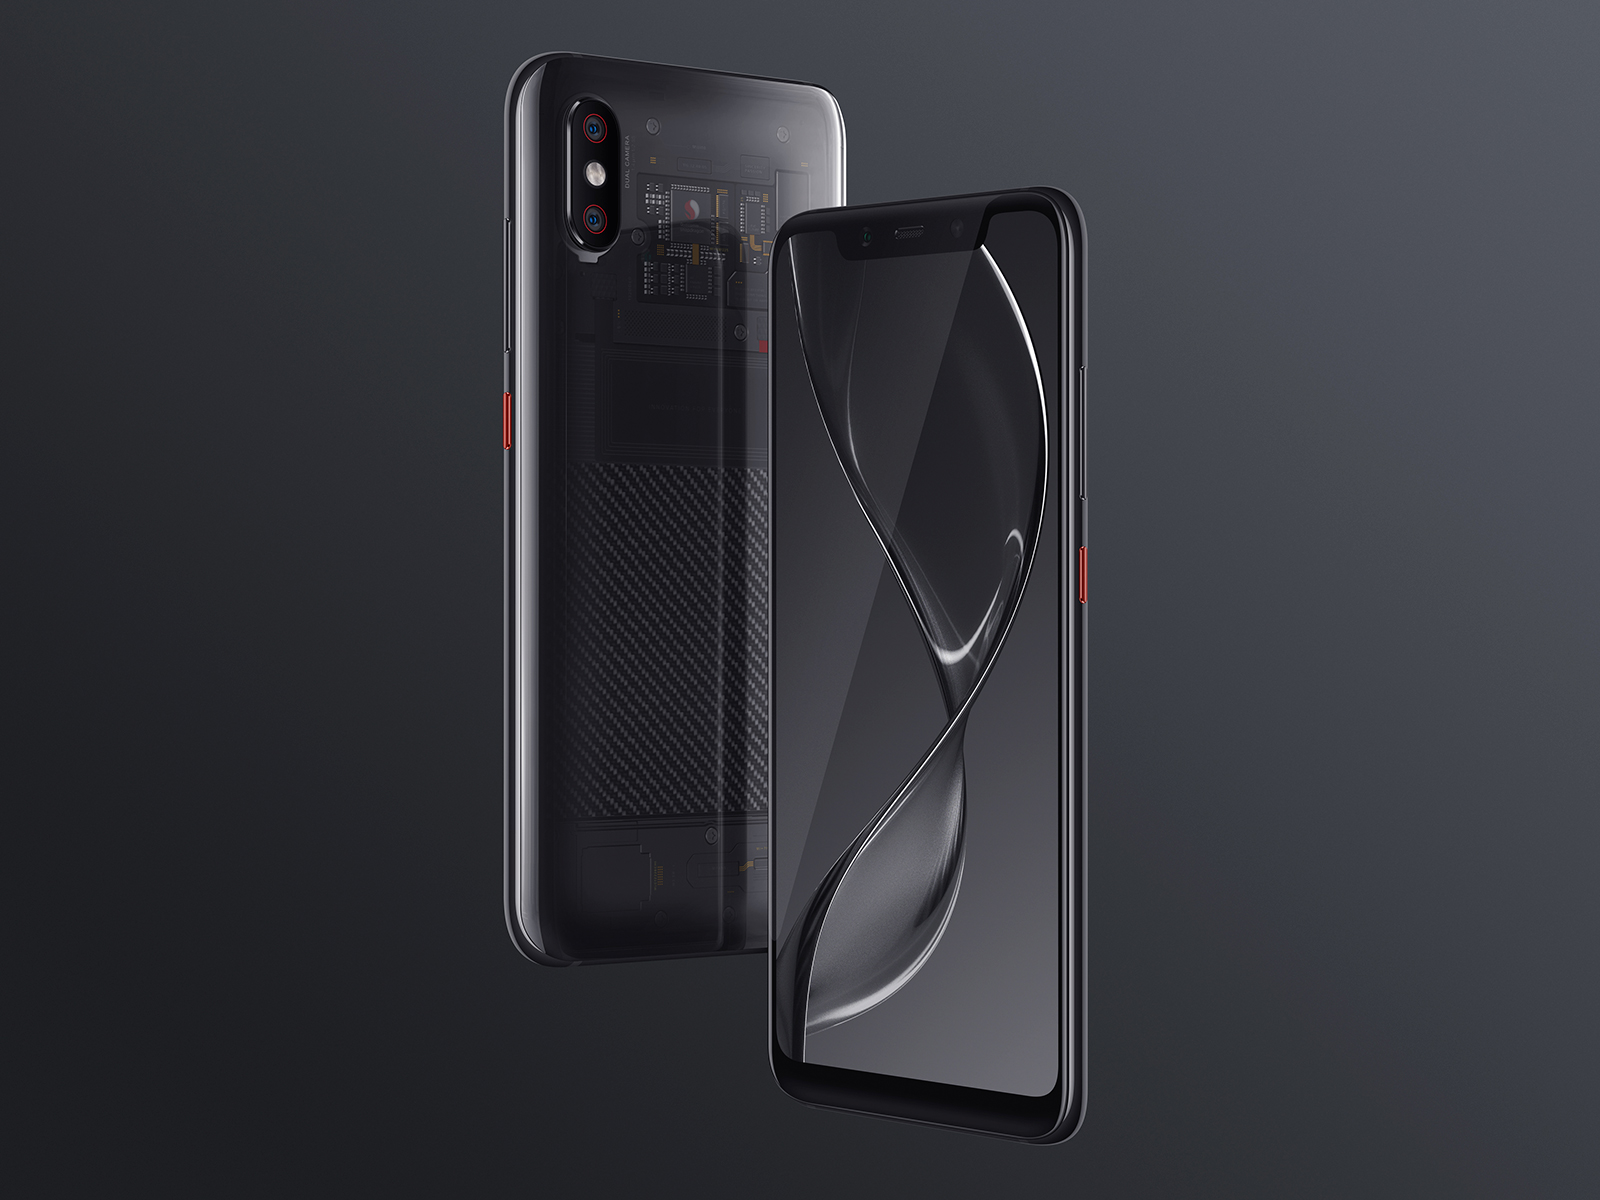 Xiaomi Mi 8: Release date, specs, features and price